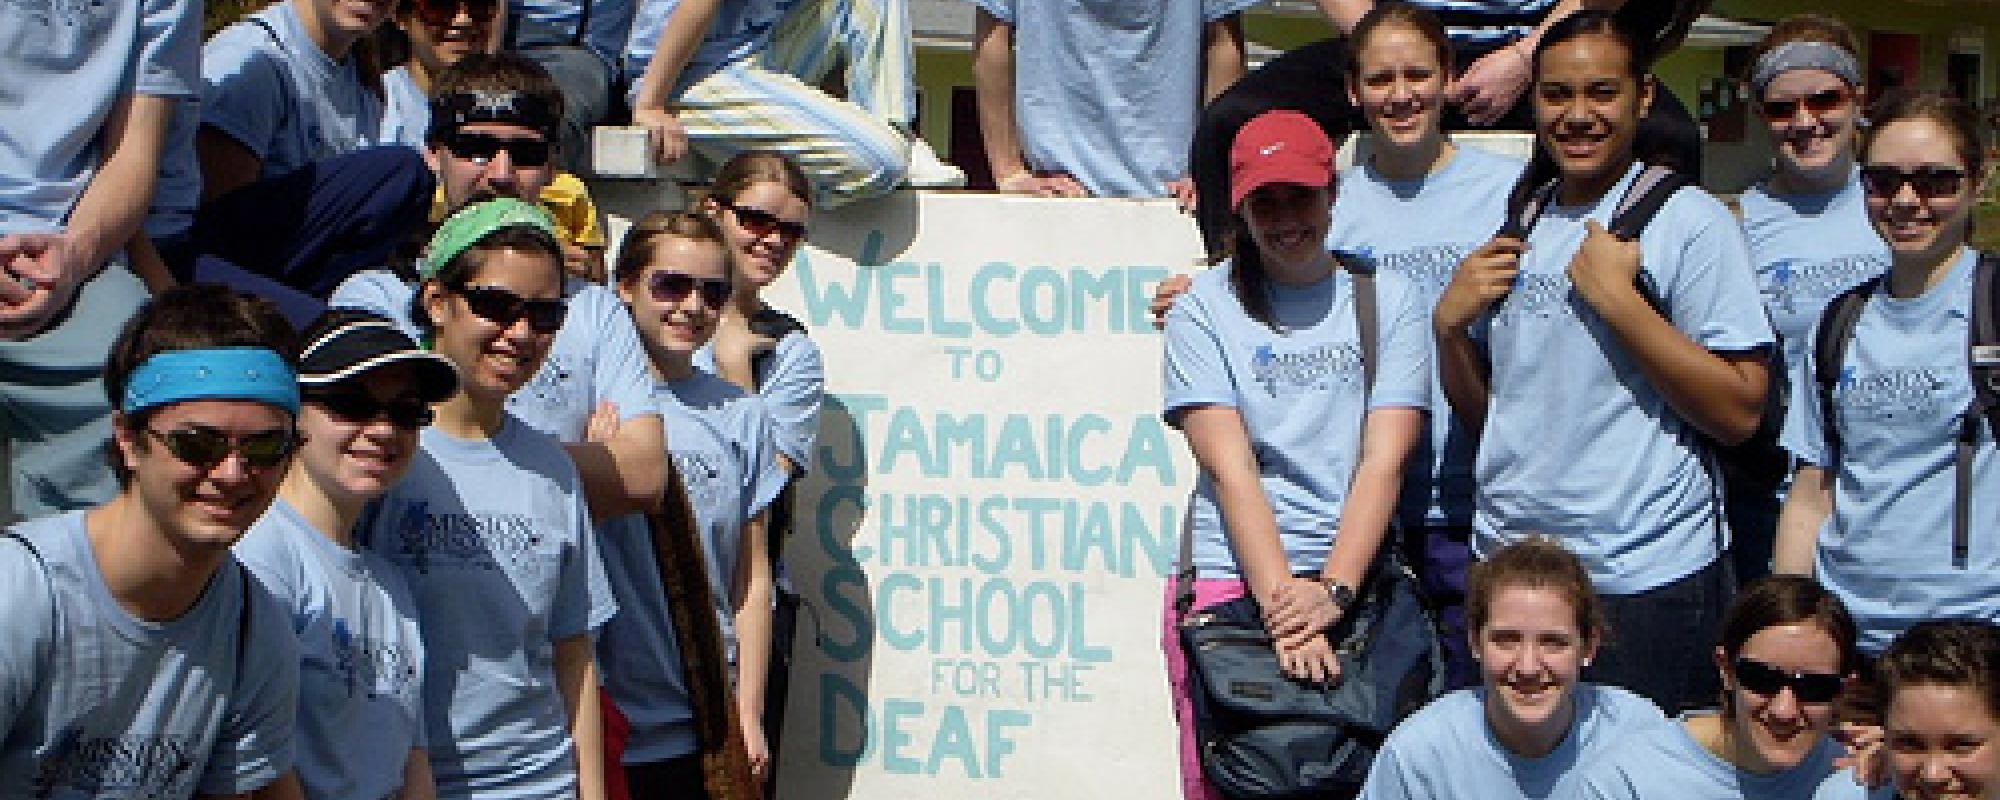 Welcome to Jamaica Christian School for the Deaf